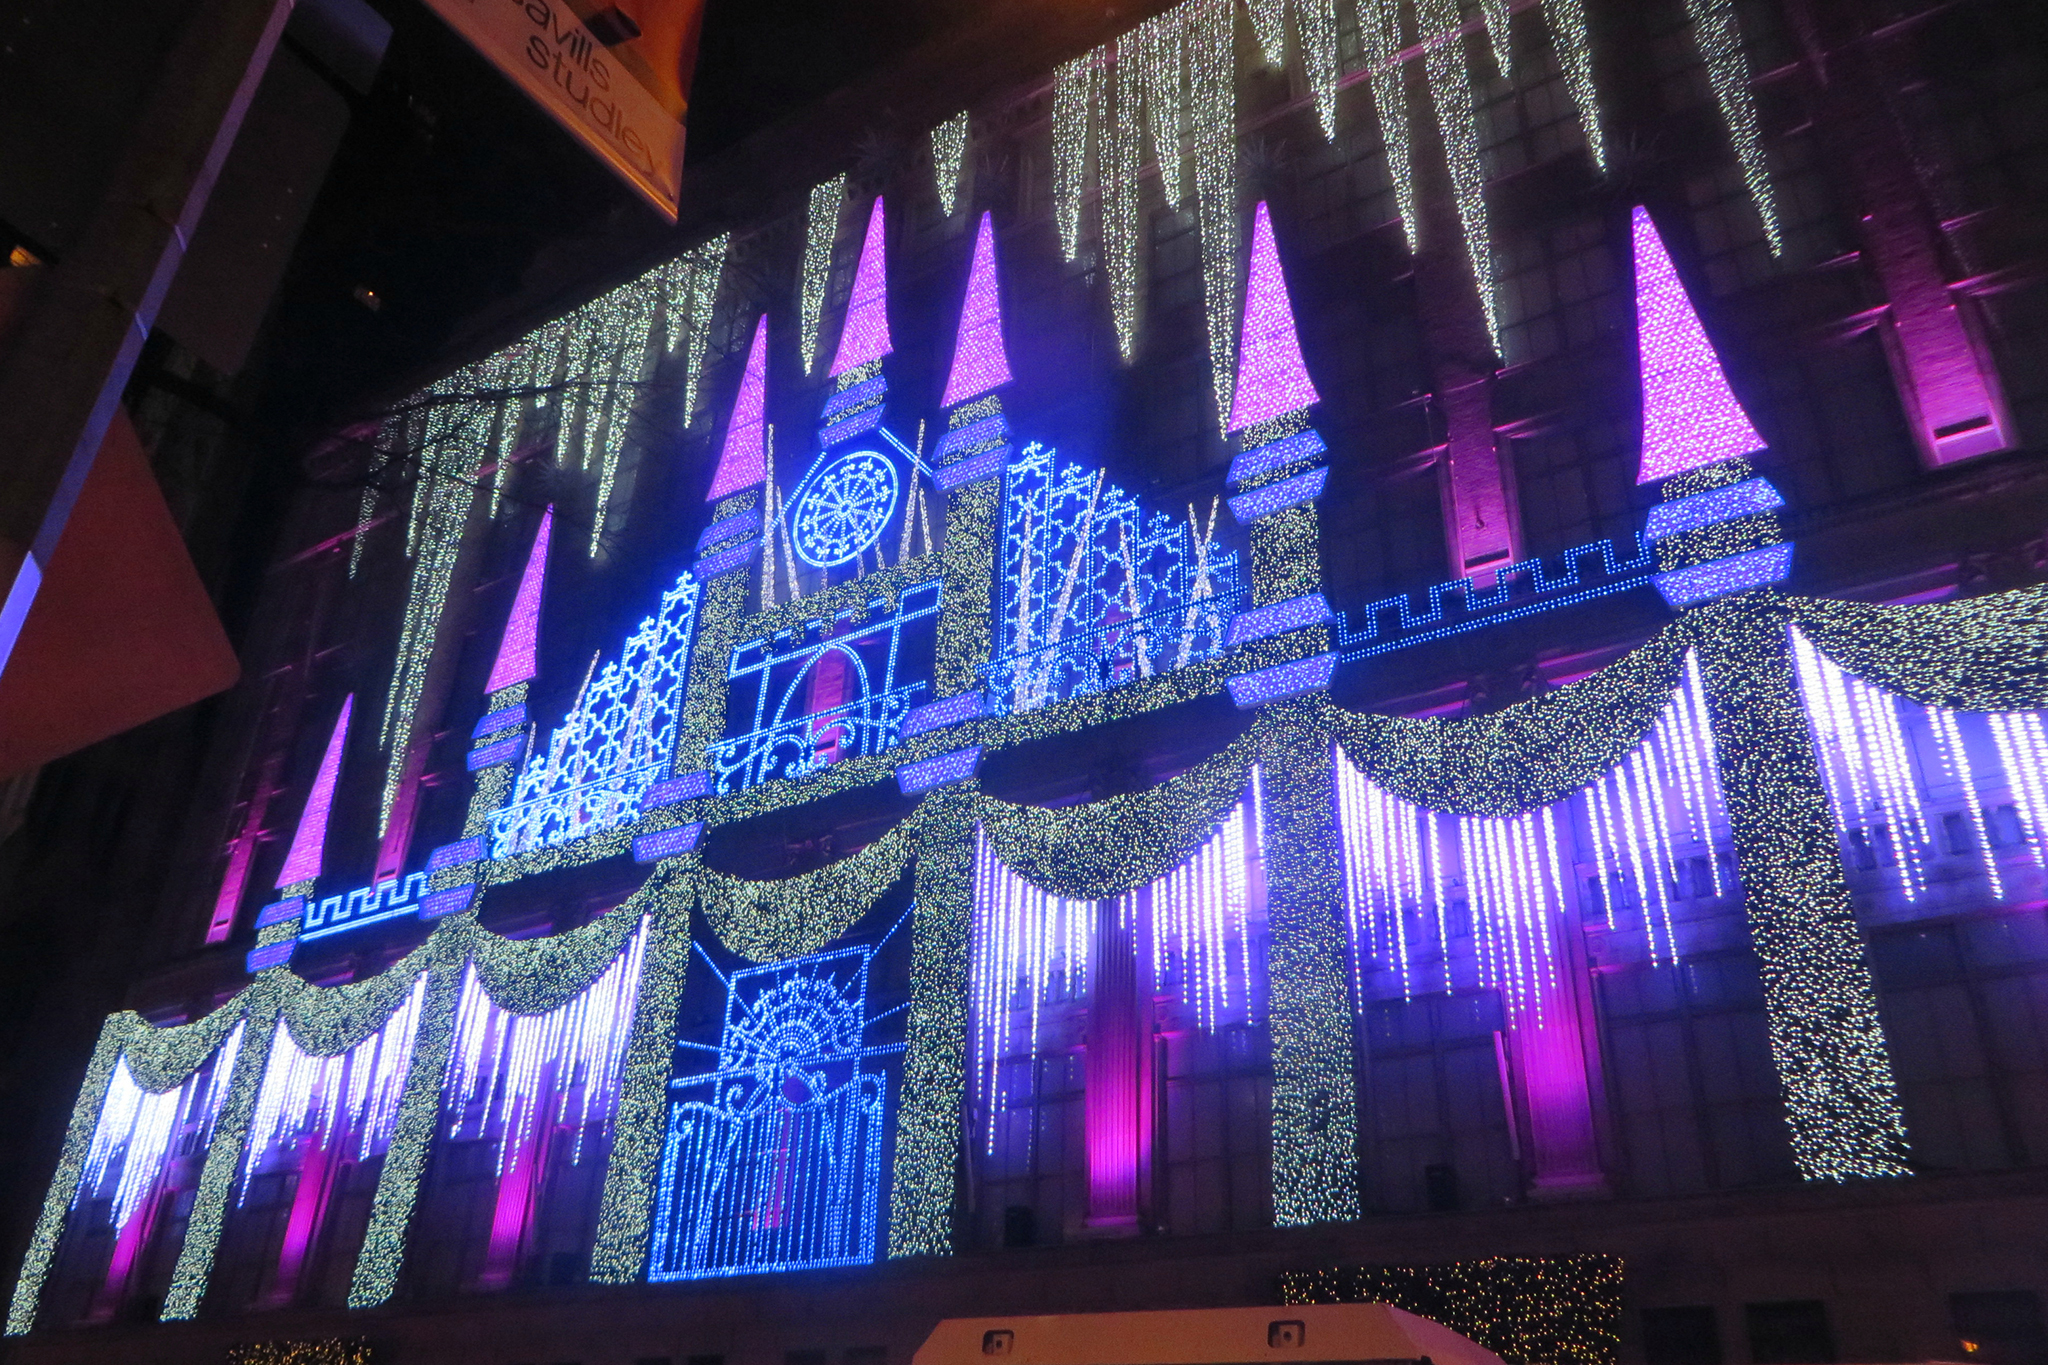 Saks Fifth Avenue Christmas Light Show 2020 Times Stunning Christmas Lights NYC Offers And Festive Attractions